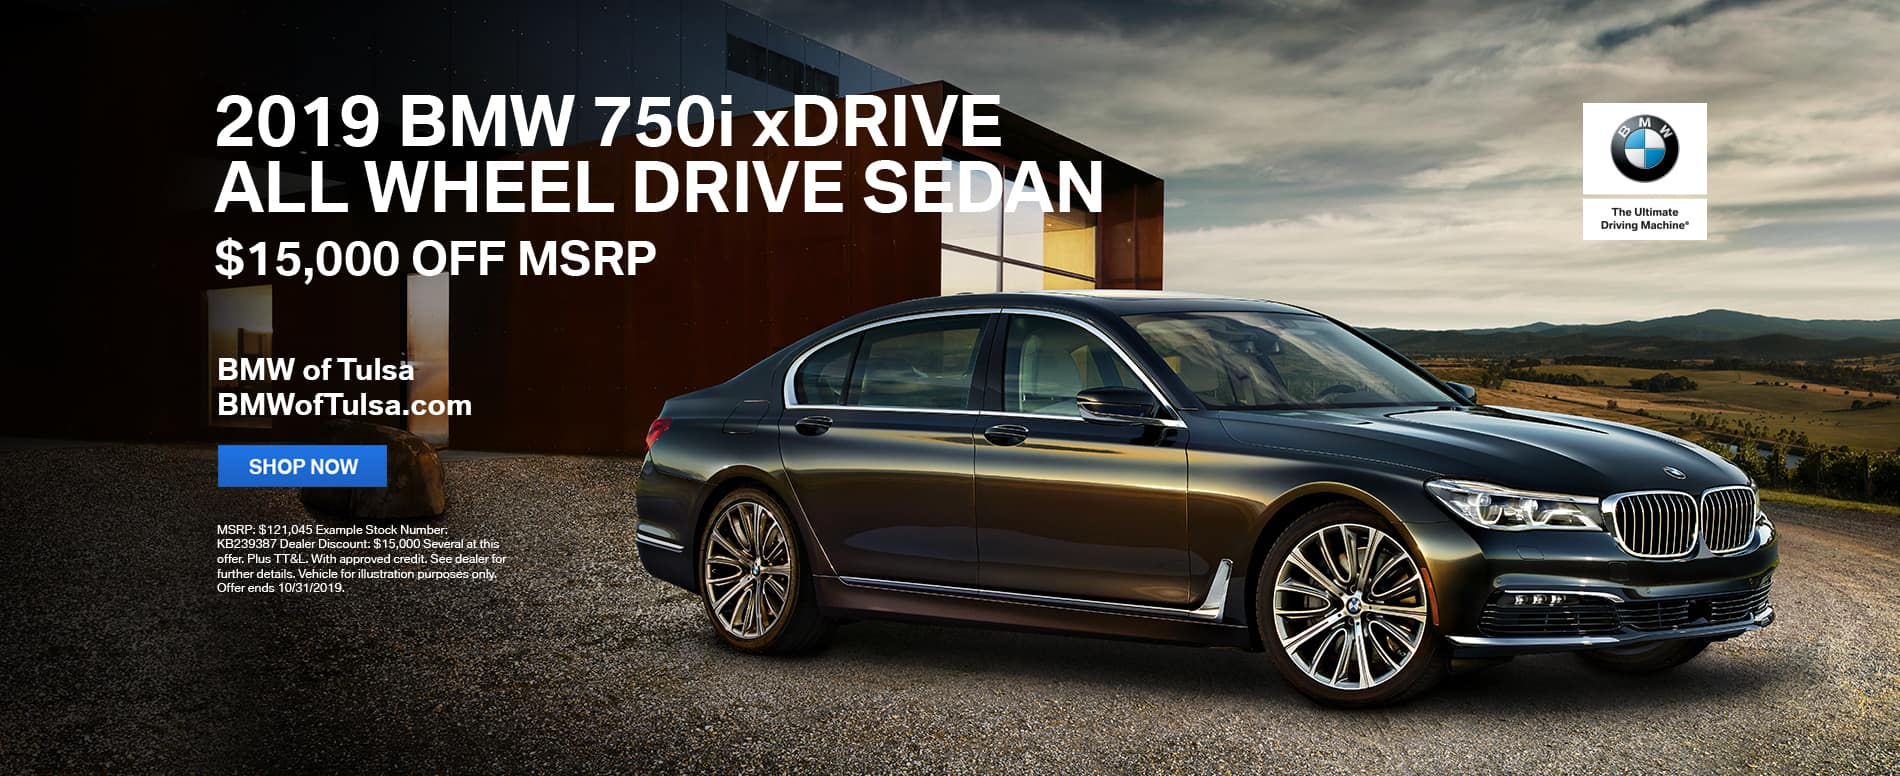 2019_BMW_Tulsa_750i_Offer